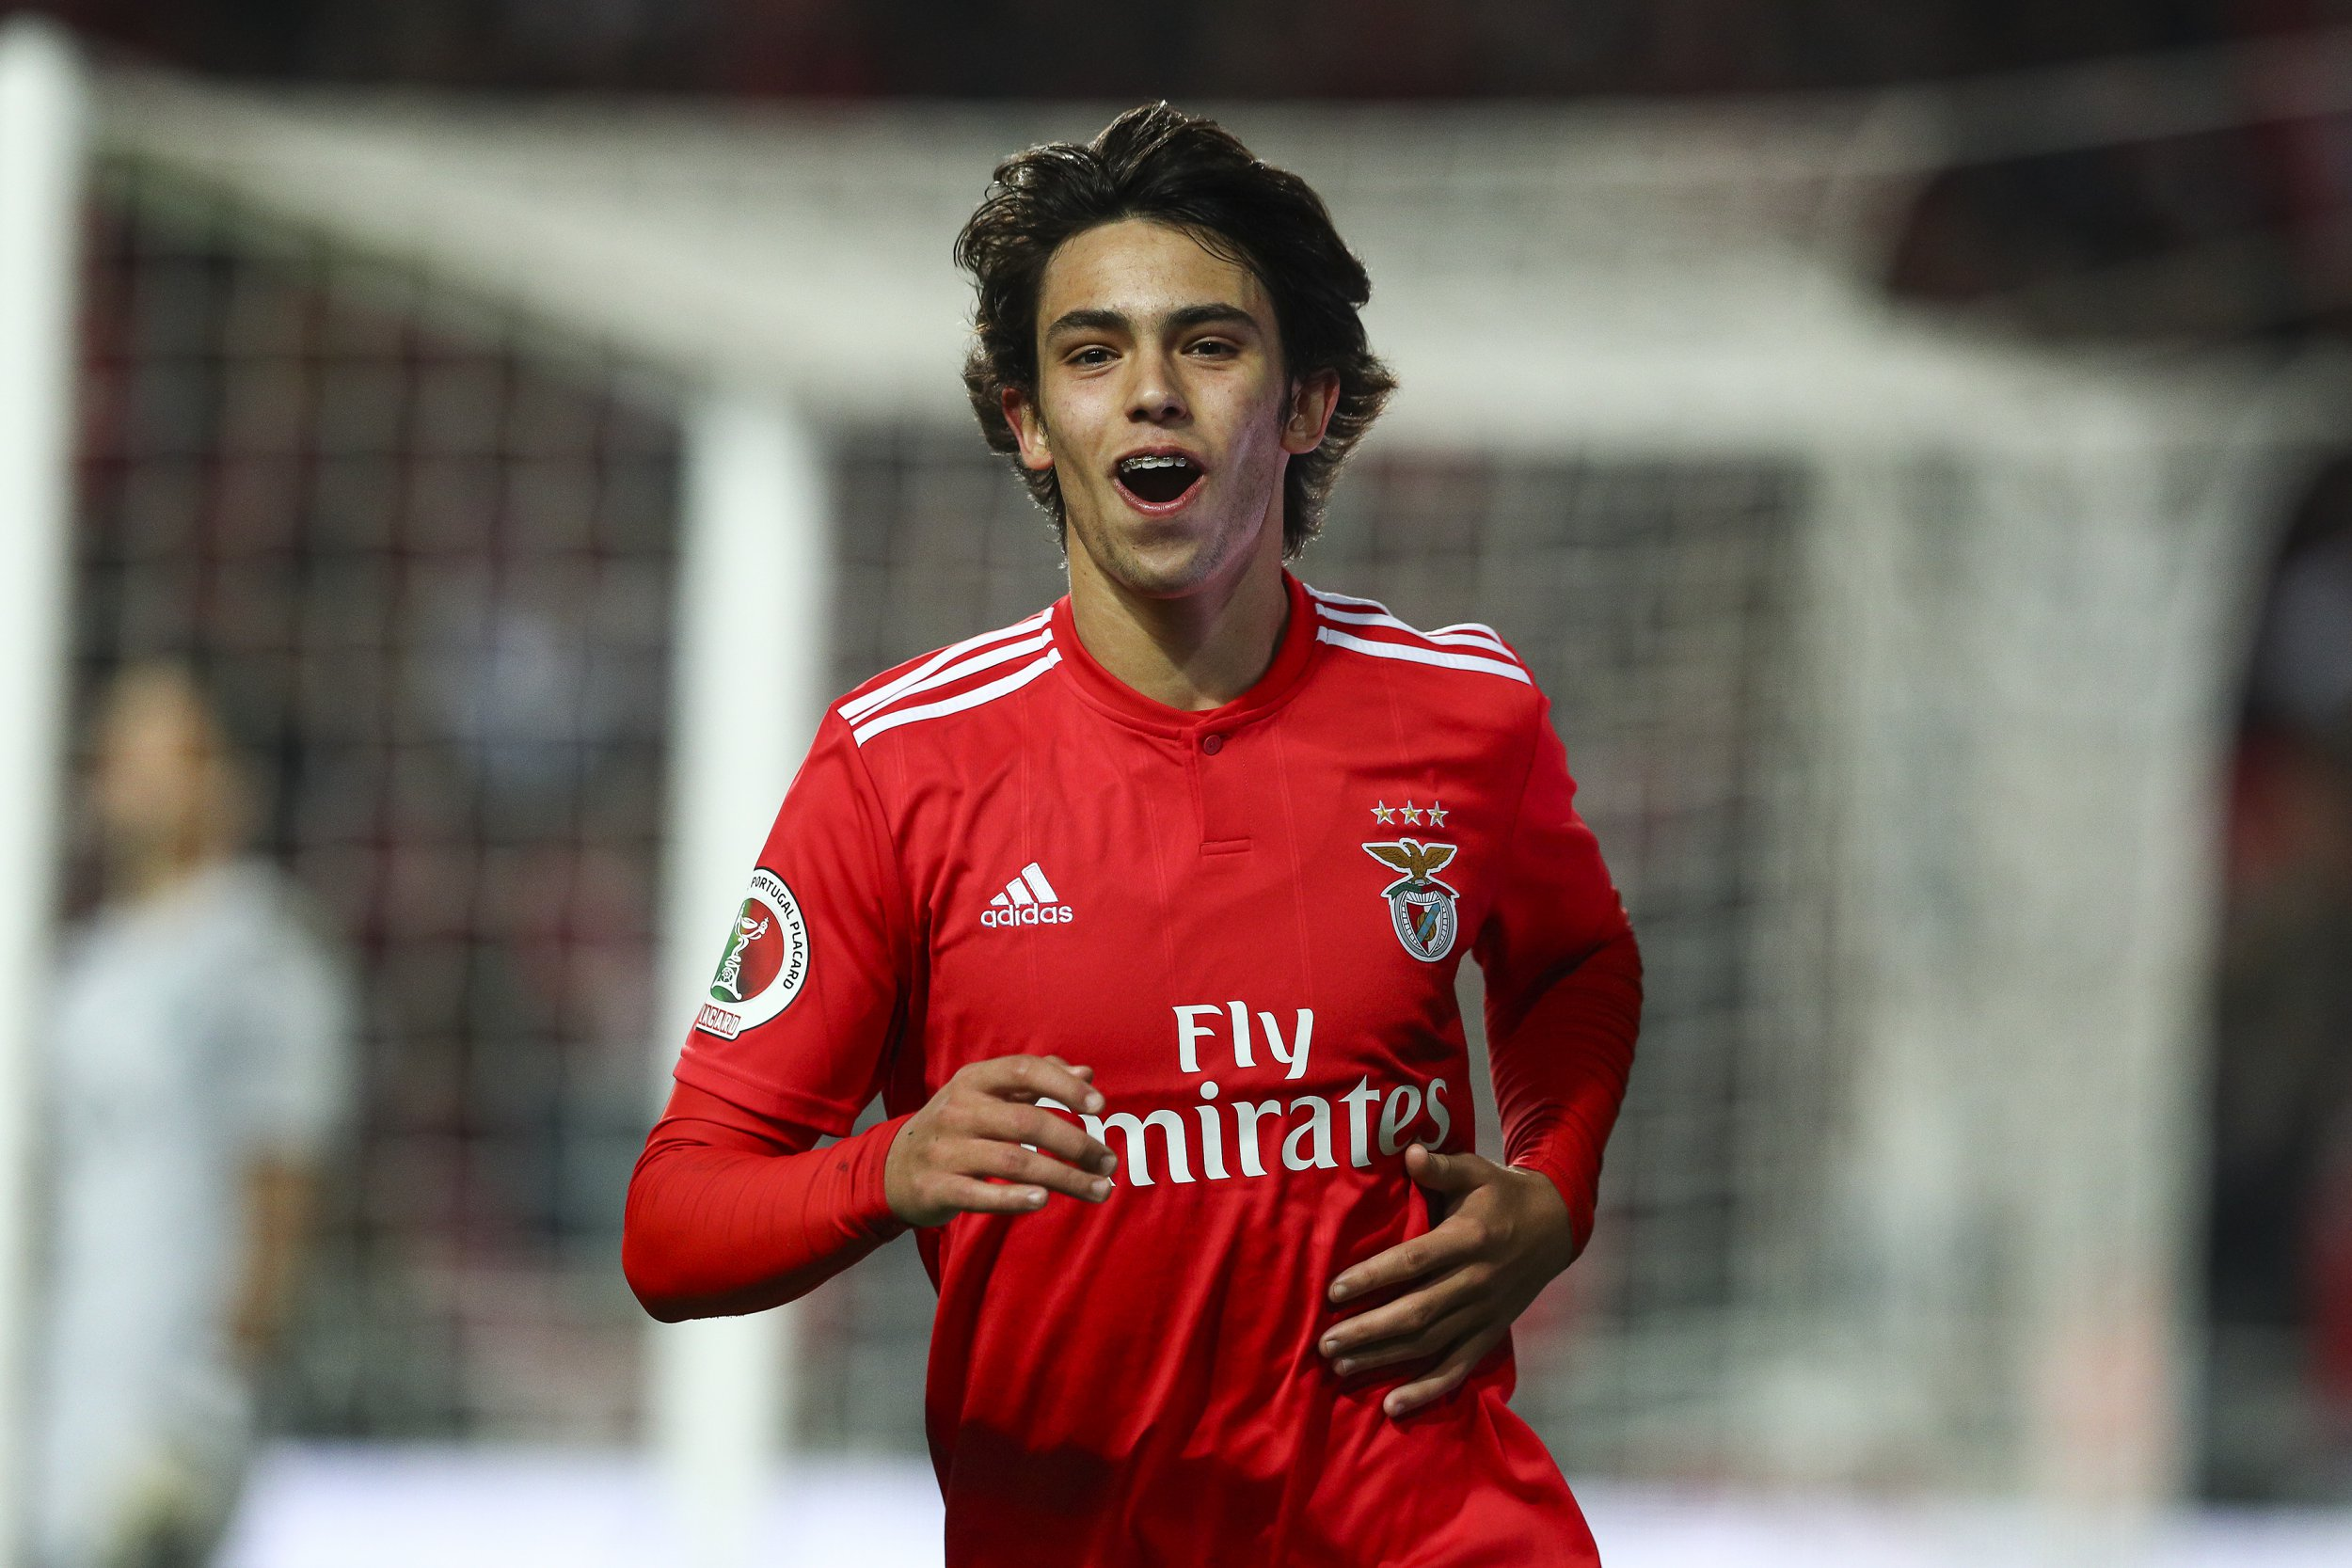 Benfica fire warning to Manchester United over Joao Felix transfer